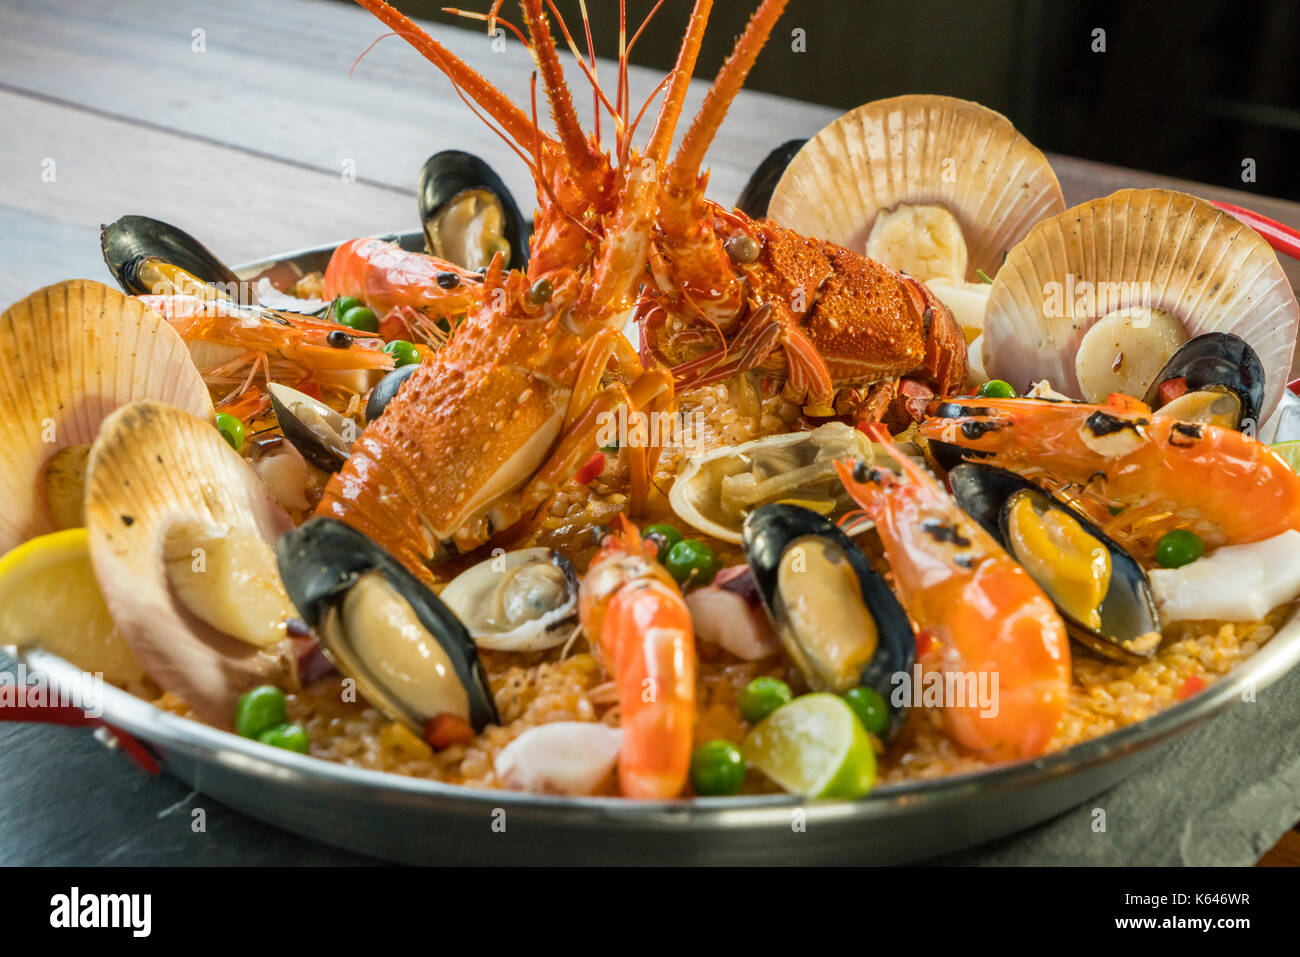 Gourmet seafood Valencia paella with fresh langoustine, clams, mussels and squid on savory saffron rice with prawn, Stock Photo